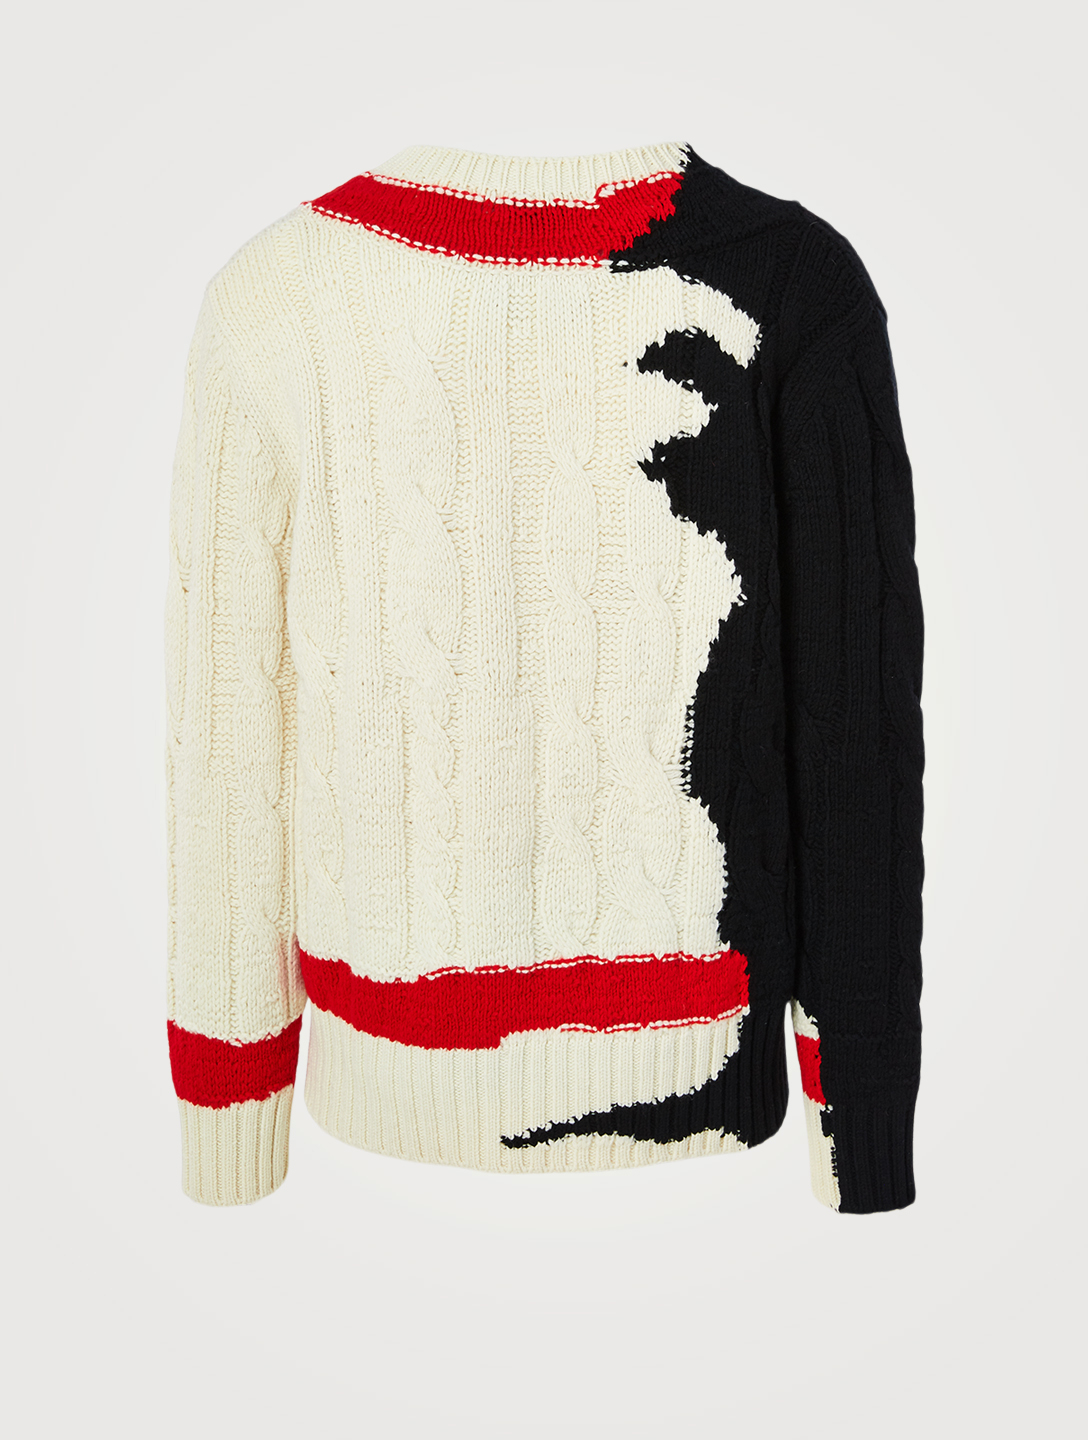 ALEXANDER MCQUEEN Wool Sweater With Ink Bleeding Intarsia Men's Multi